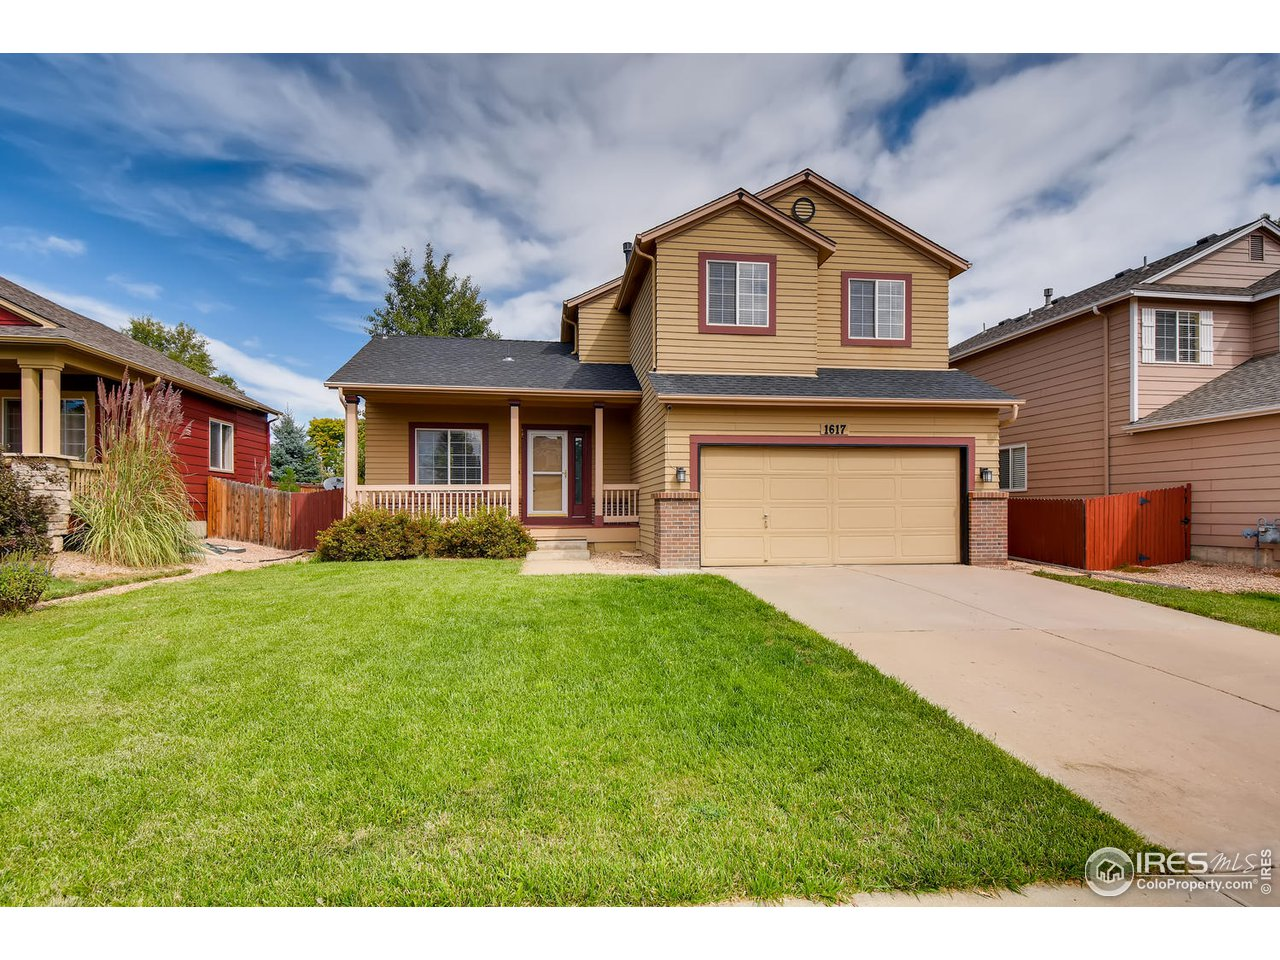 1617 Daily Dr, Erie CO 80516